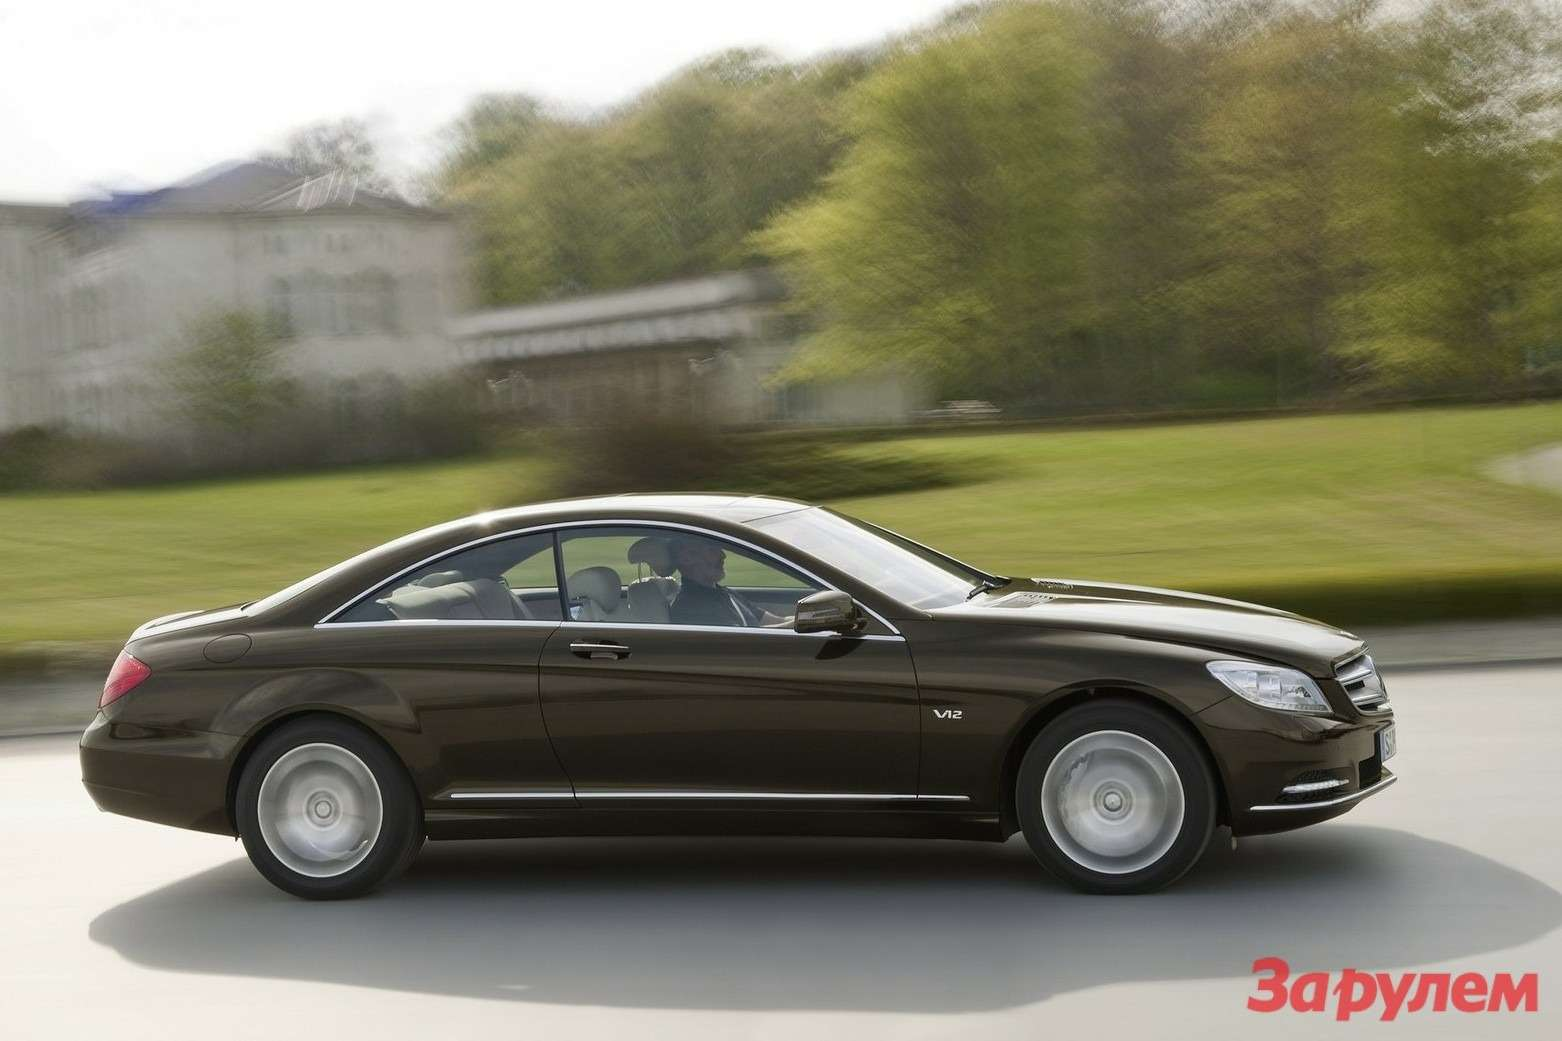 Mercedes-Benz-CL-Class_2011_1600x1200_wallpaper_49